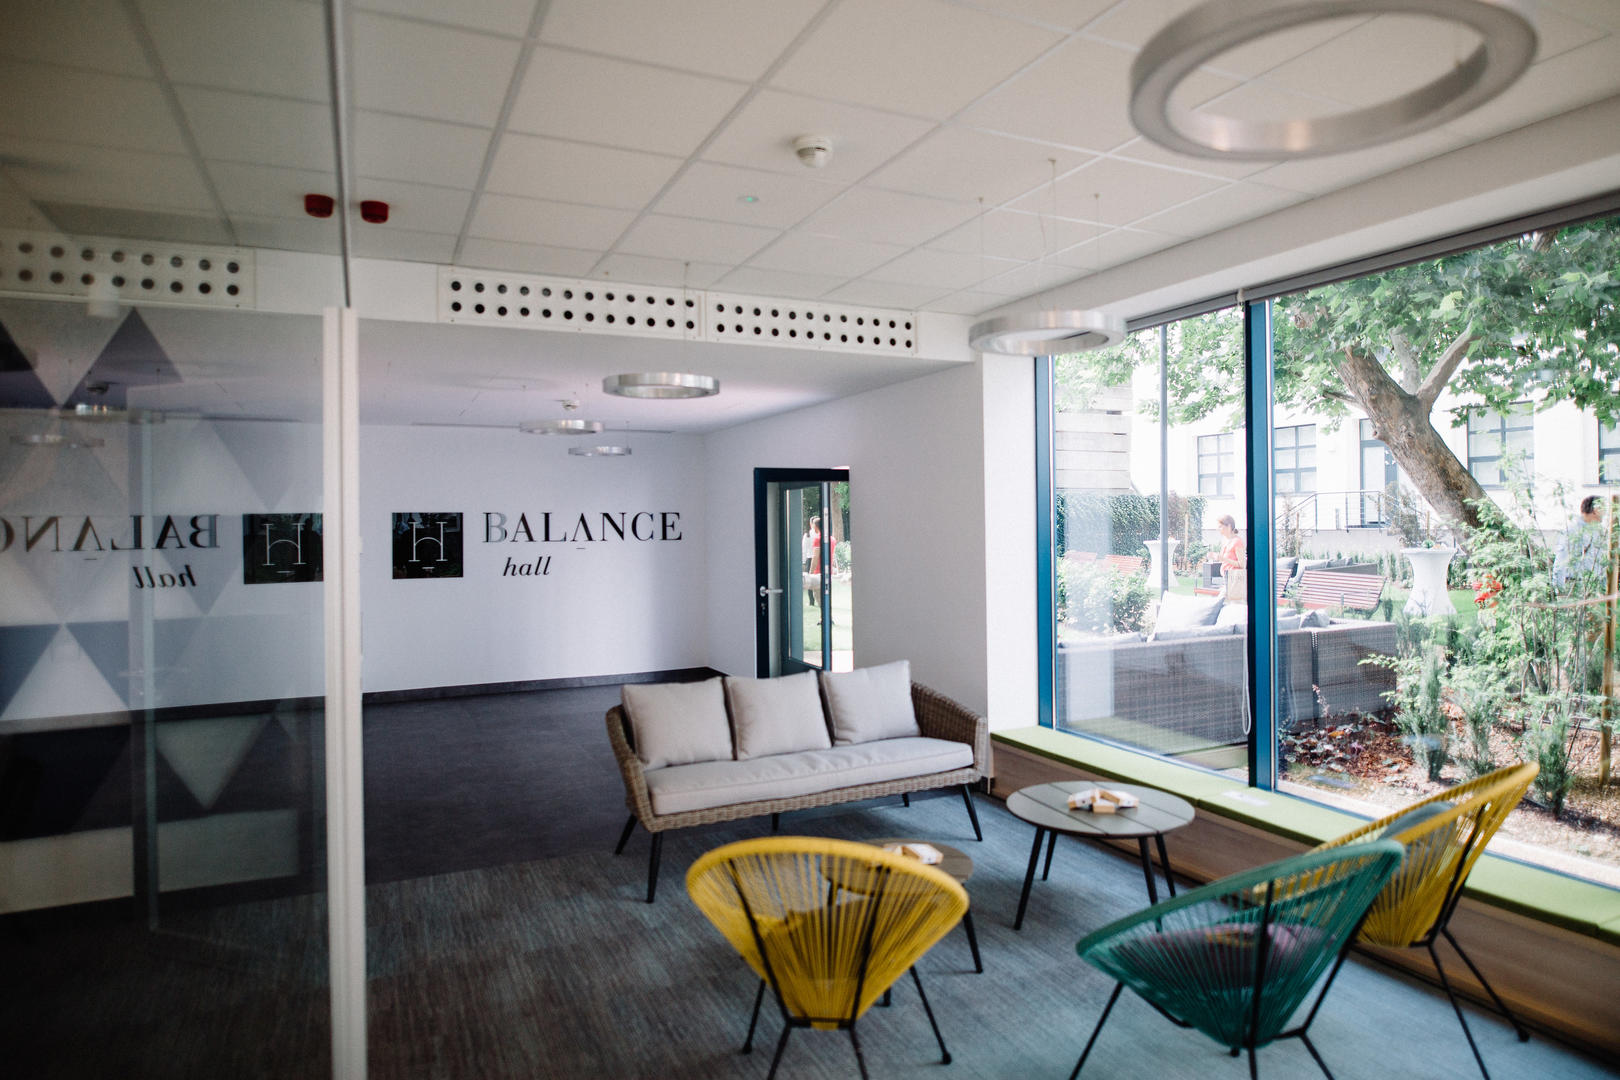 Balance Hall - Conscious Building. Powered by you a02b6cb688